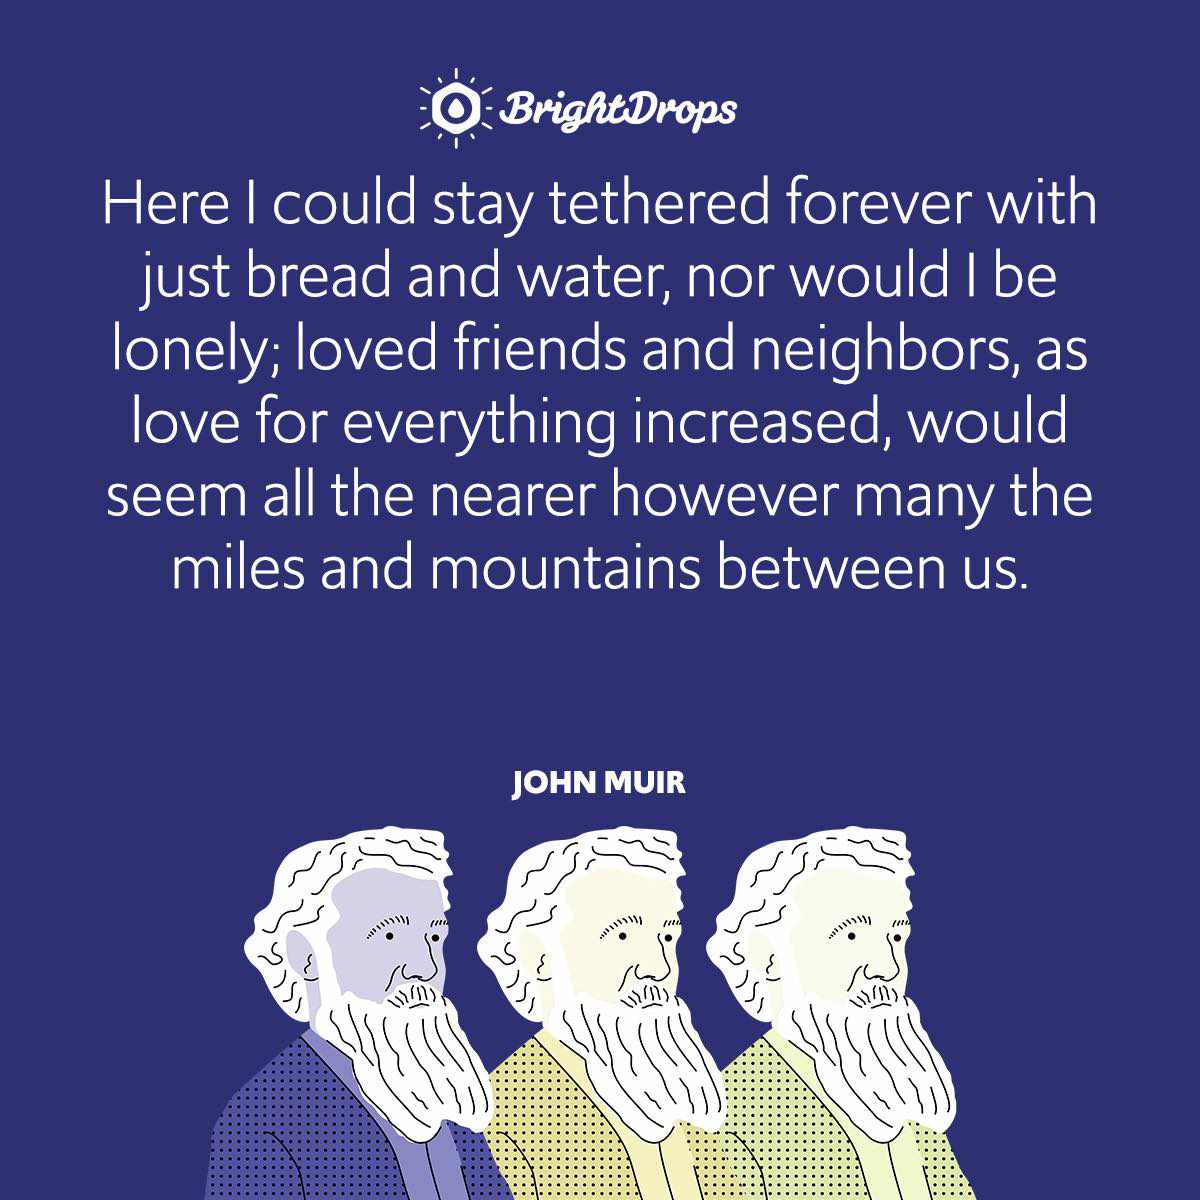 Here I could stay tethered forever with just bread and water, nor would I be lonely; loved friends and neighbors, as love for everything increased, would seem all the nearer however many the miles and mountains between us.